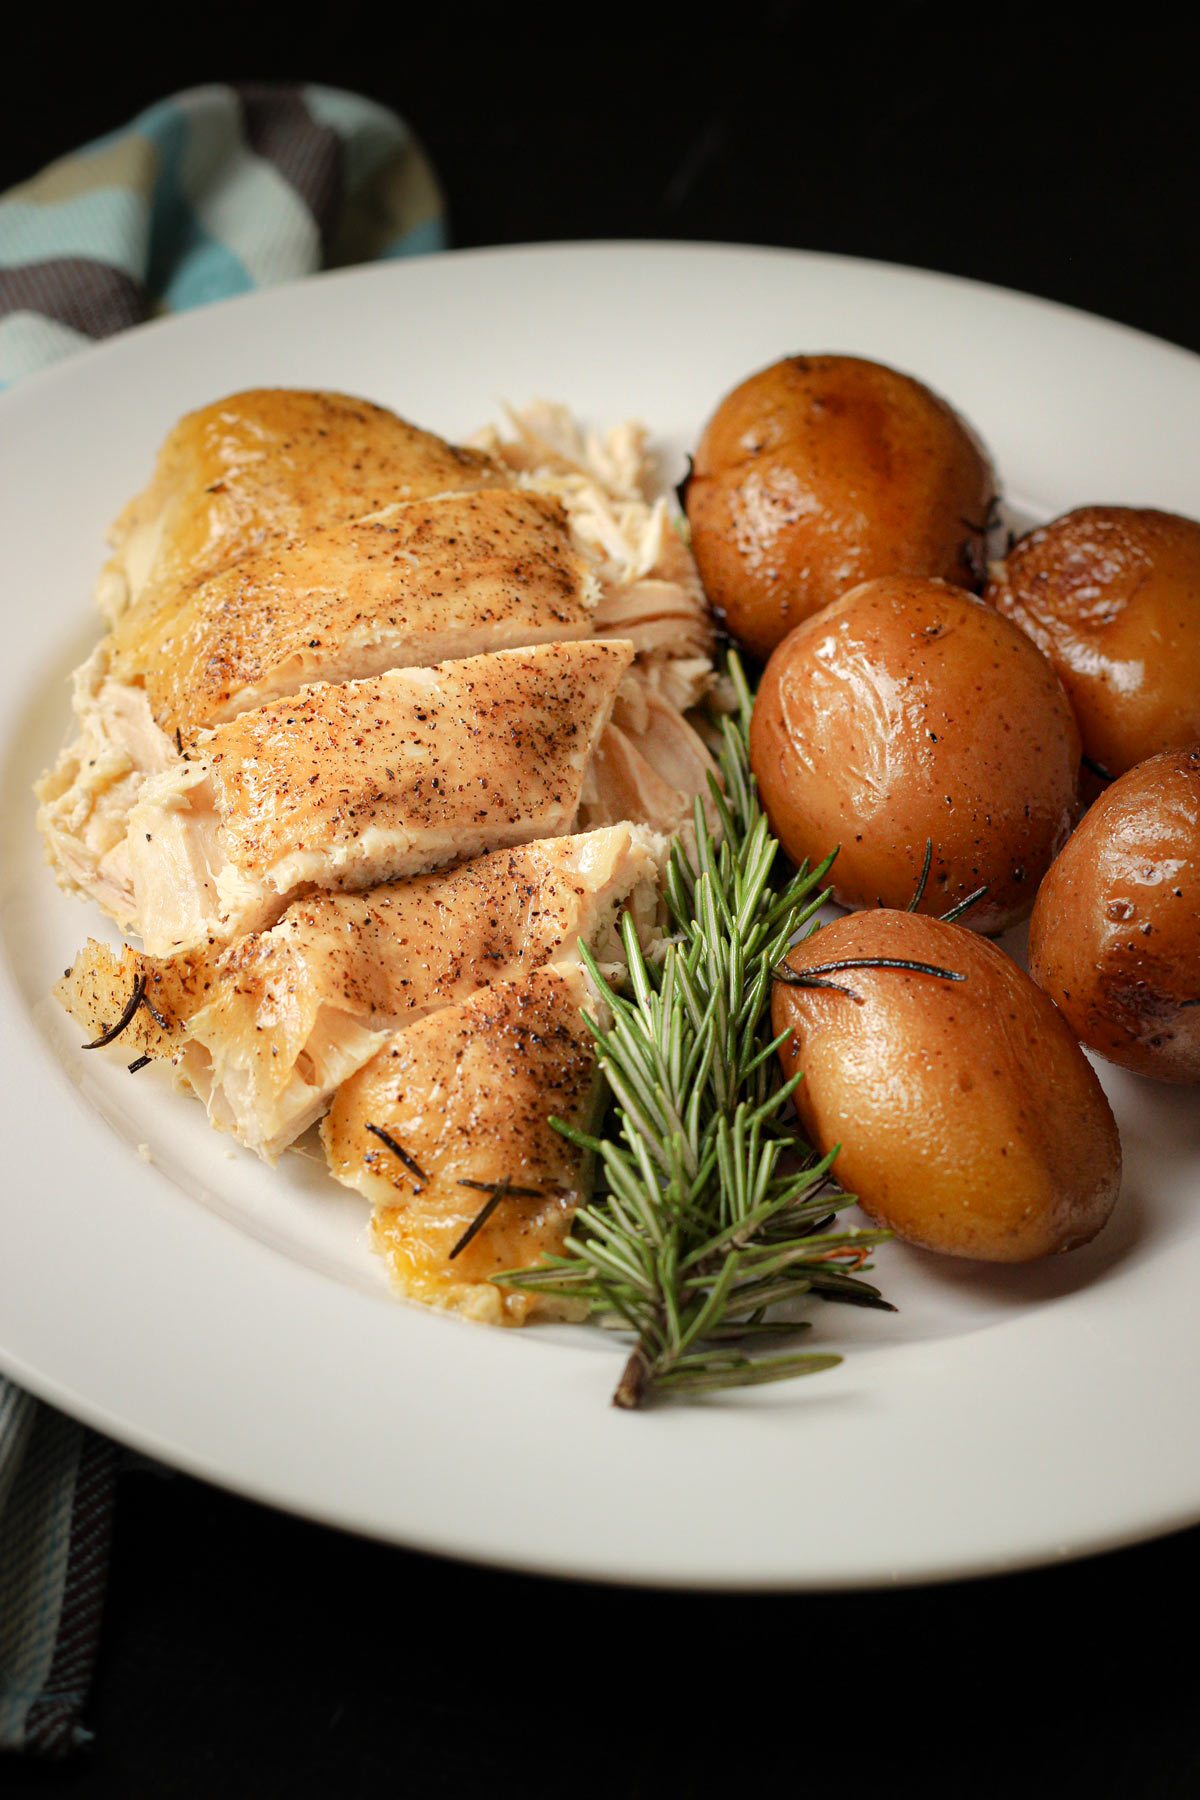 sliced chicken breast on plate with sprig of rosemary and several cooked baby potatoes.